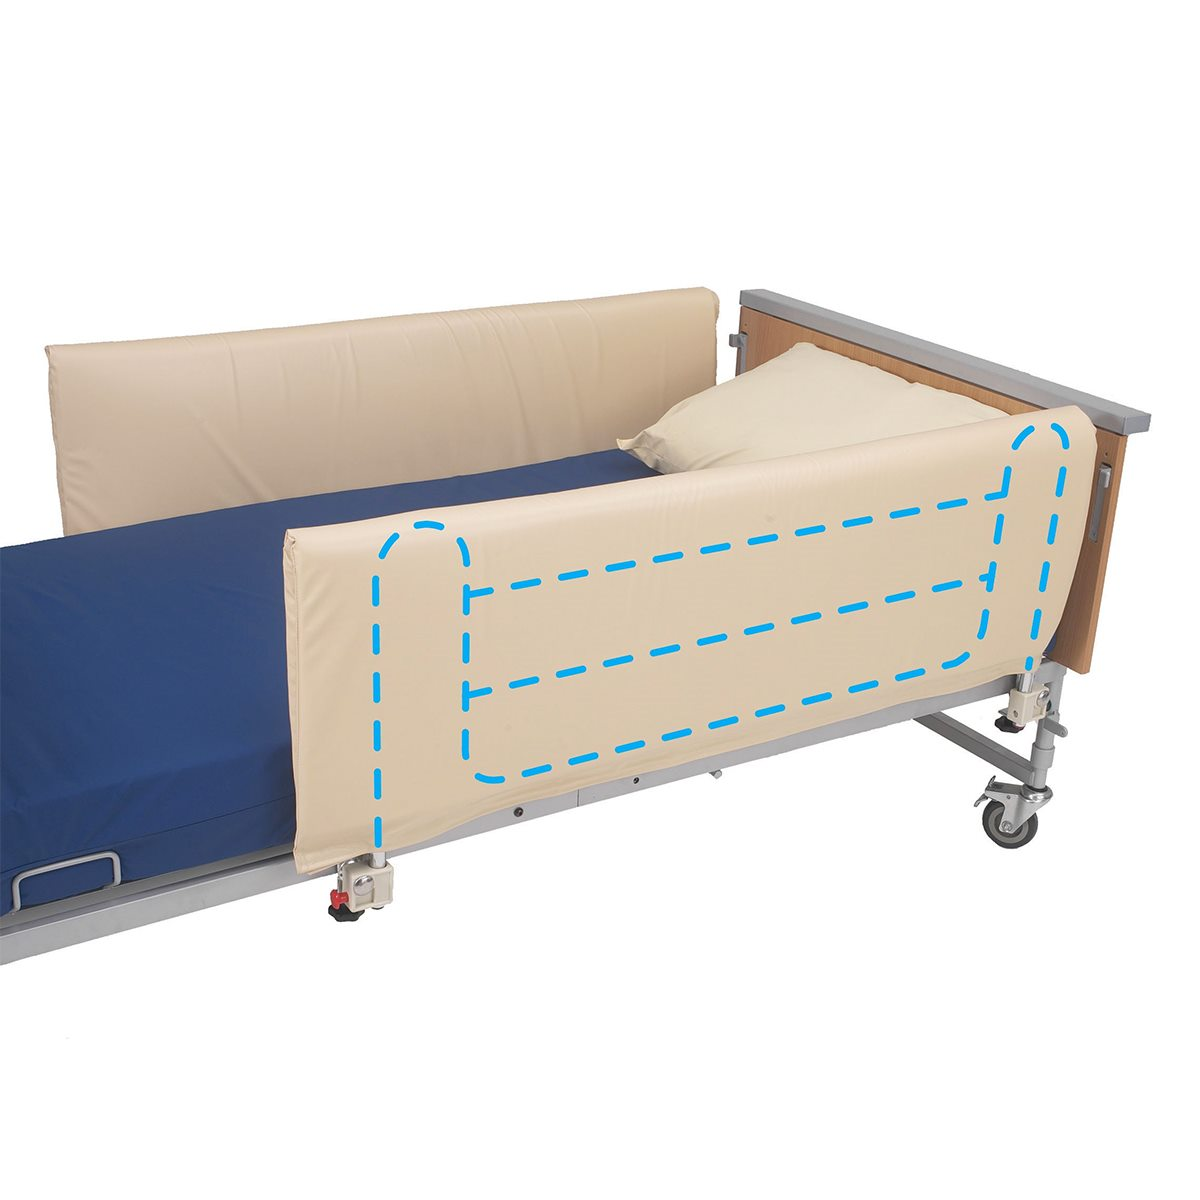 Cots with side protection cot side bumper for 3 or 4 bar rails QCWIERY